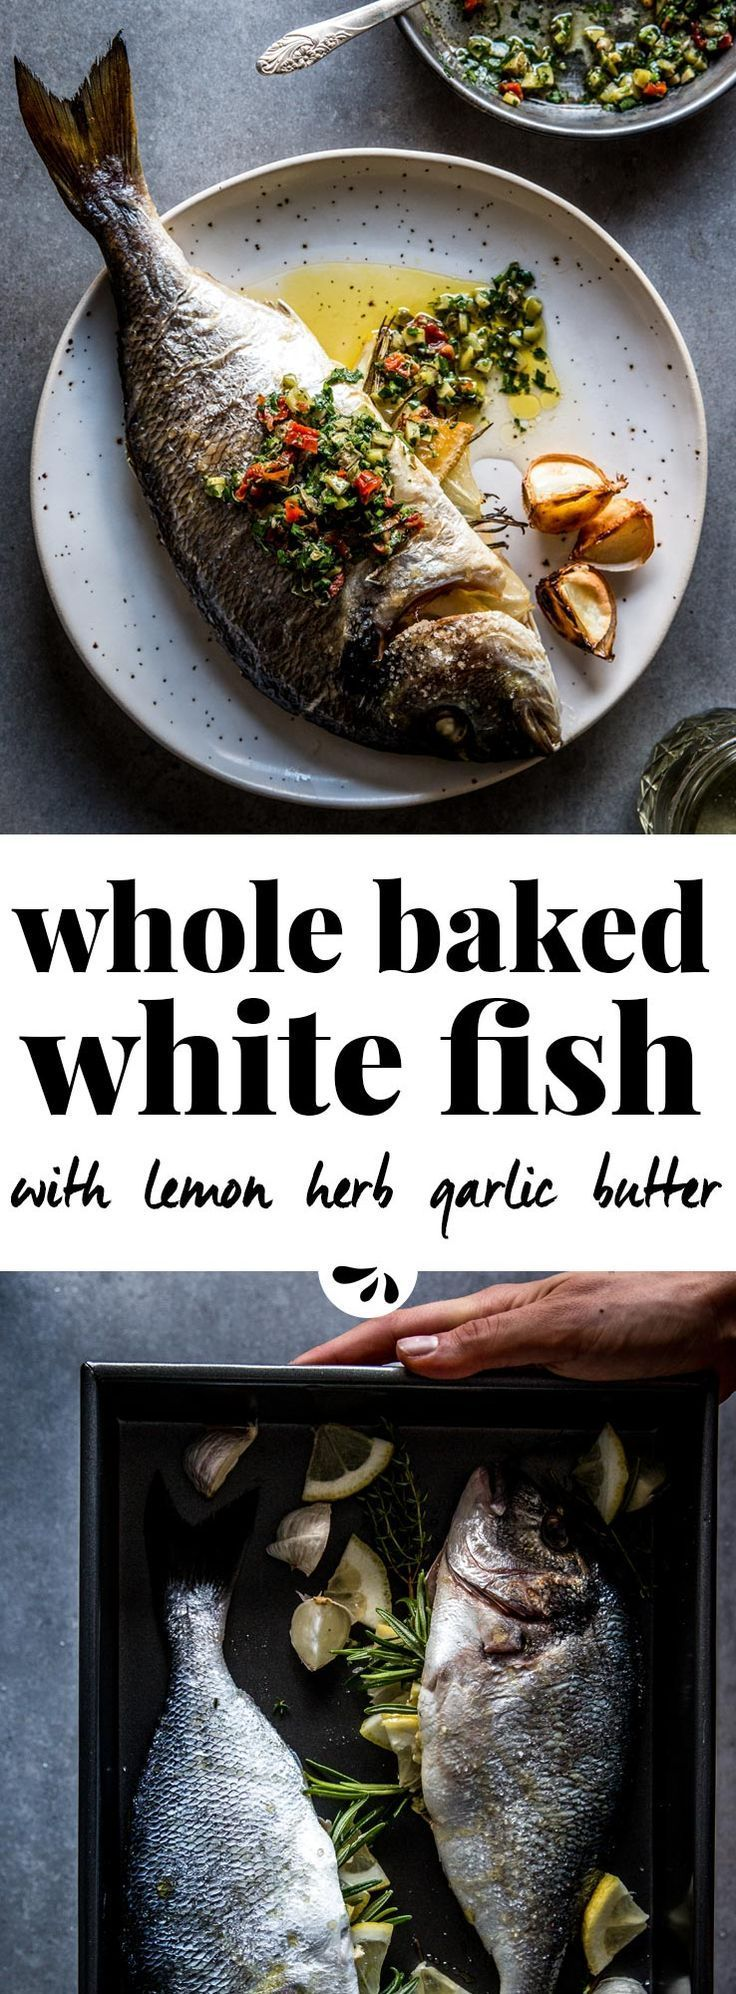 An easy and healthy baked fish recipe, this whole fish is a flavorful and simple weeknight dinner recipe. Make it with your favorite whole white fish, such as sea bream, sea bass or branzino. Stuffed with herbs, lemon and garlic butter and served with a b